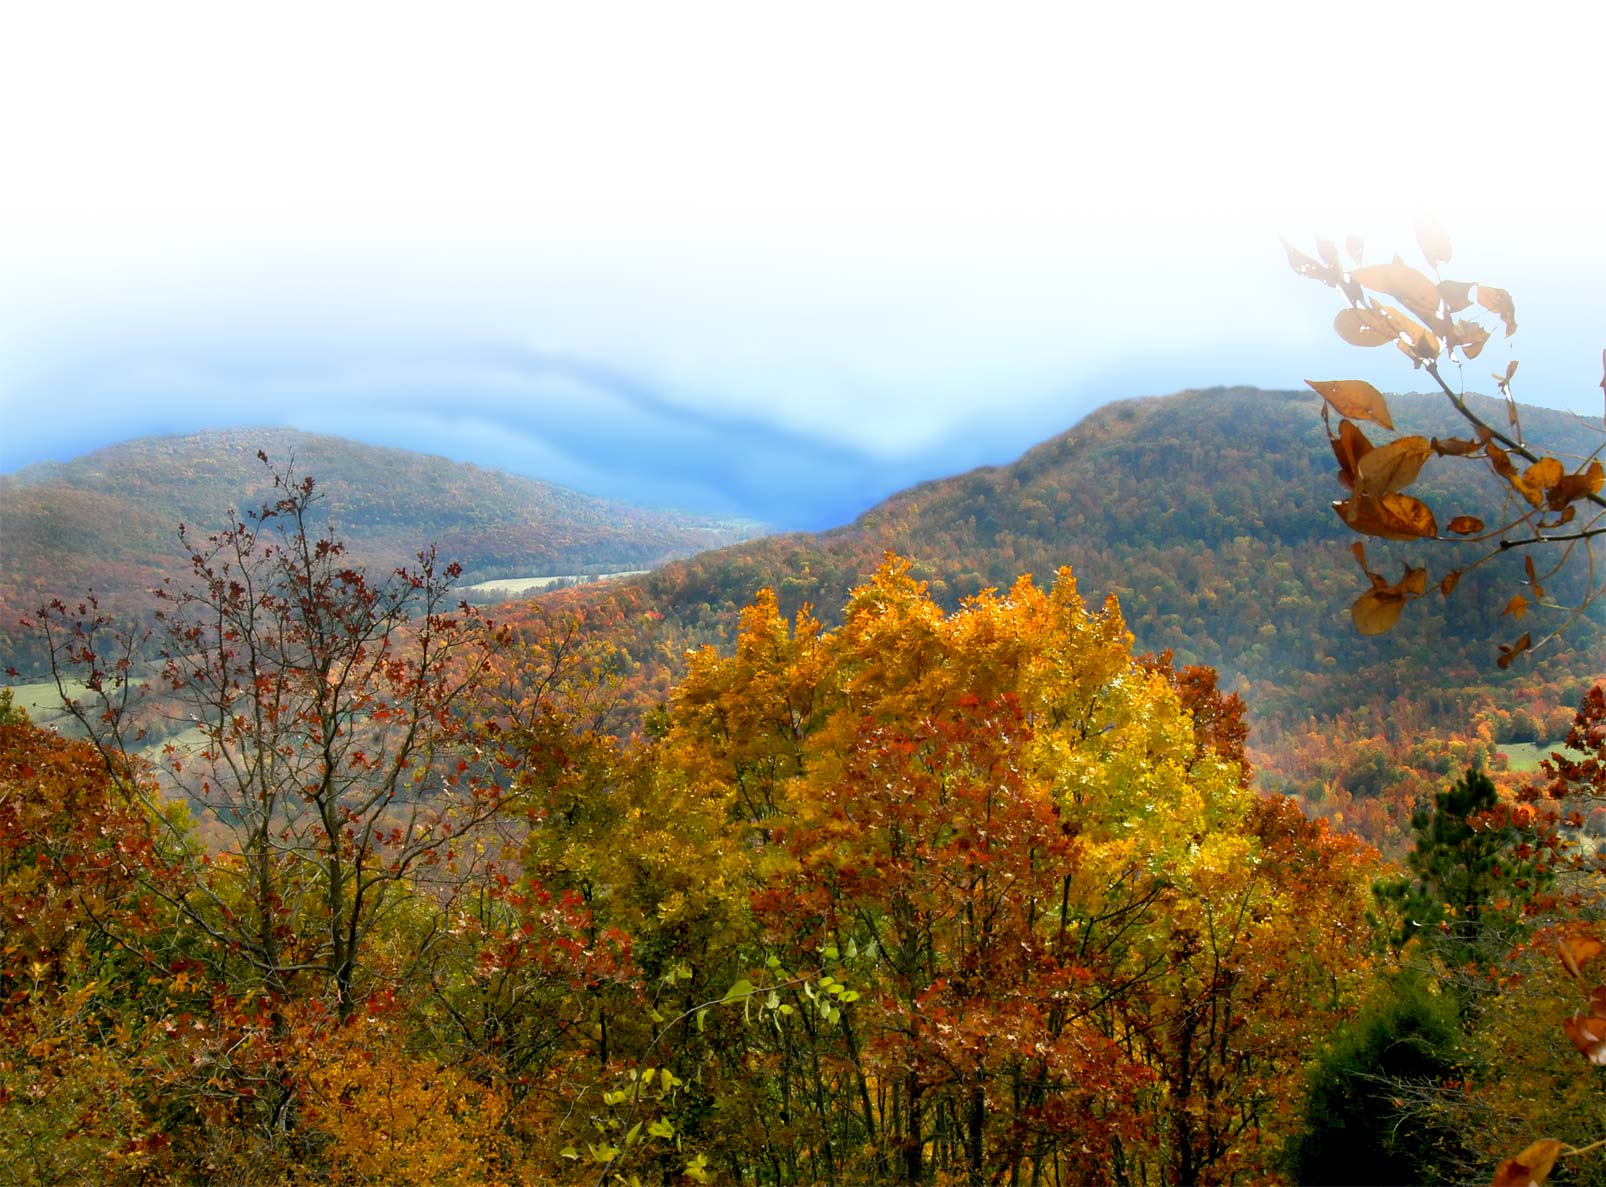 Hunting property in the ozark mountains in northwest arkansas combs - Return To Top Of Page